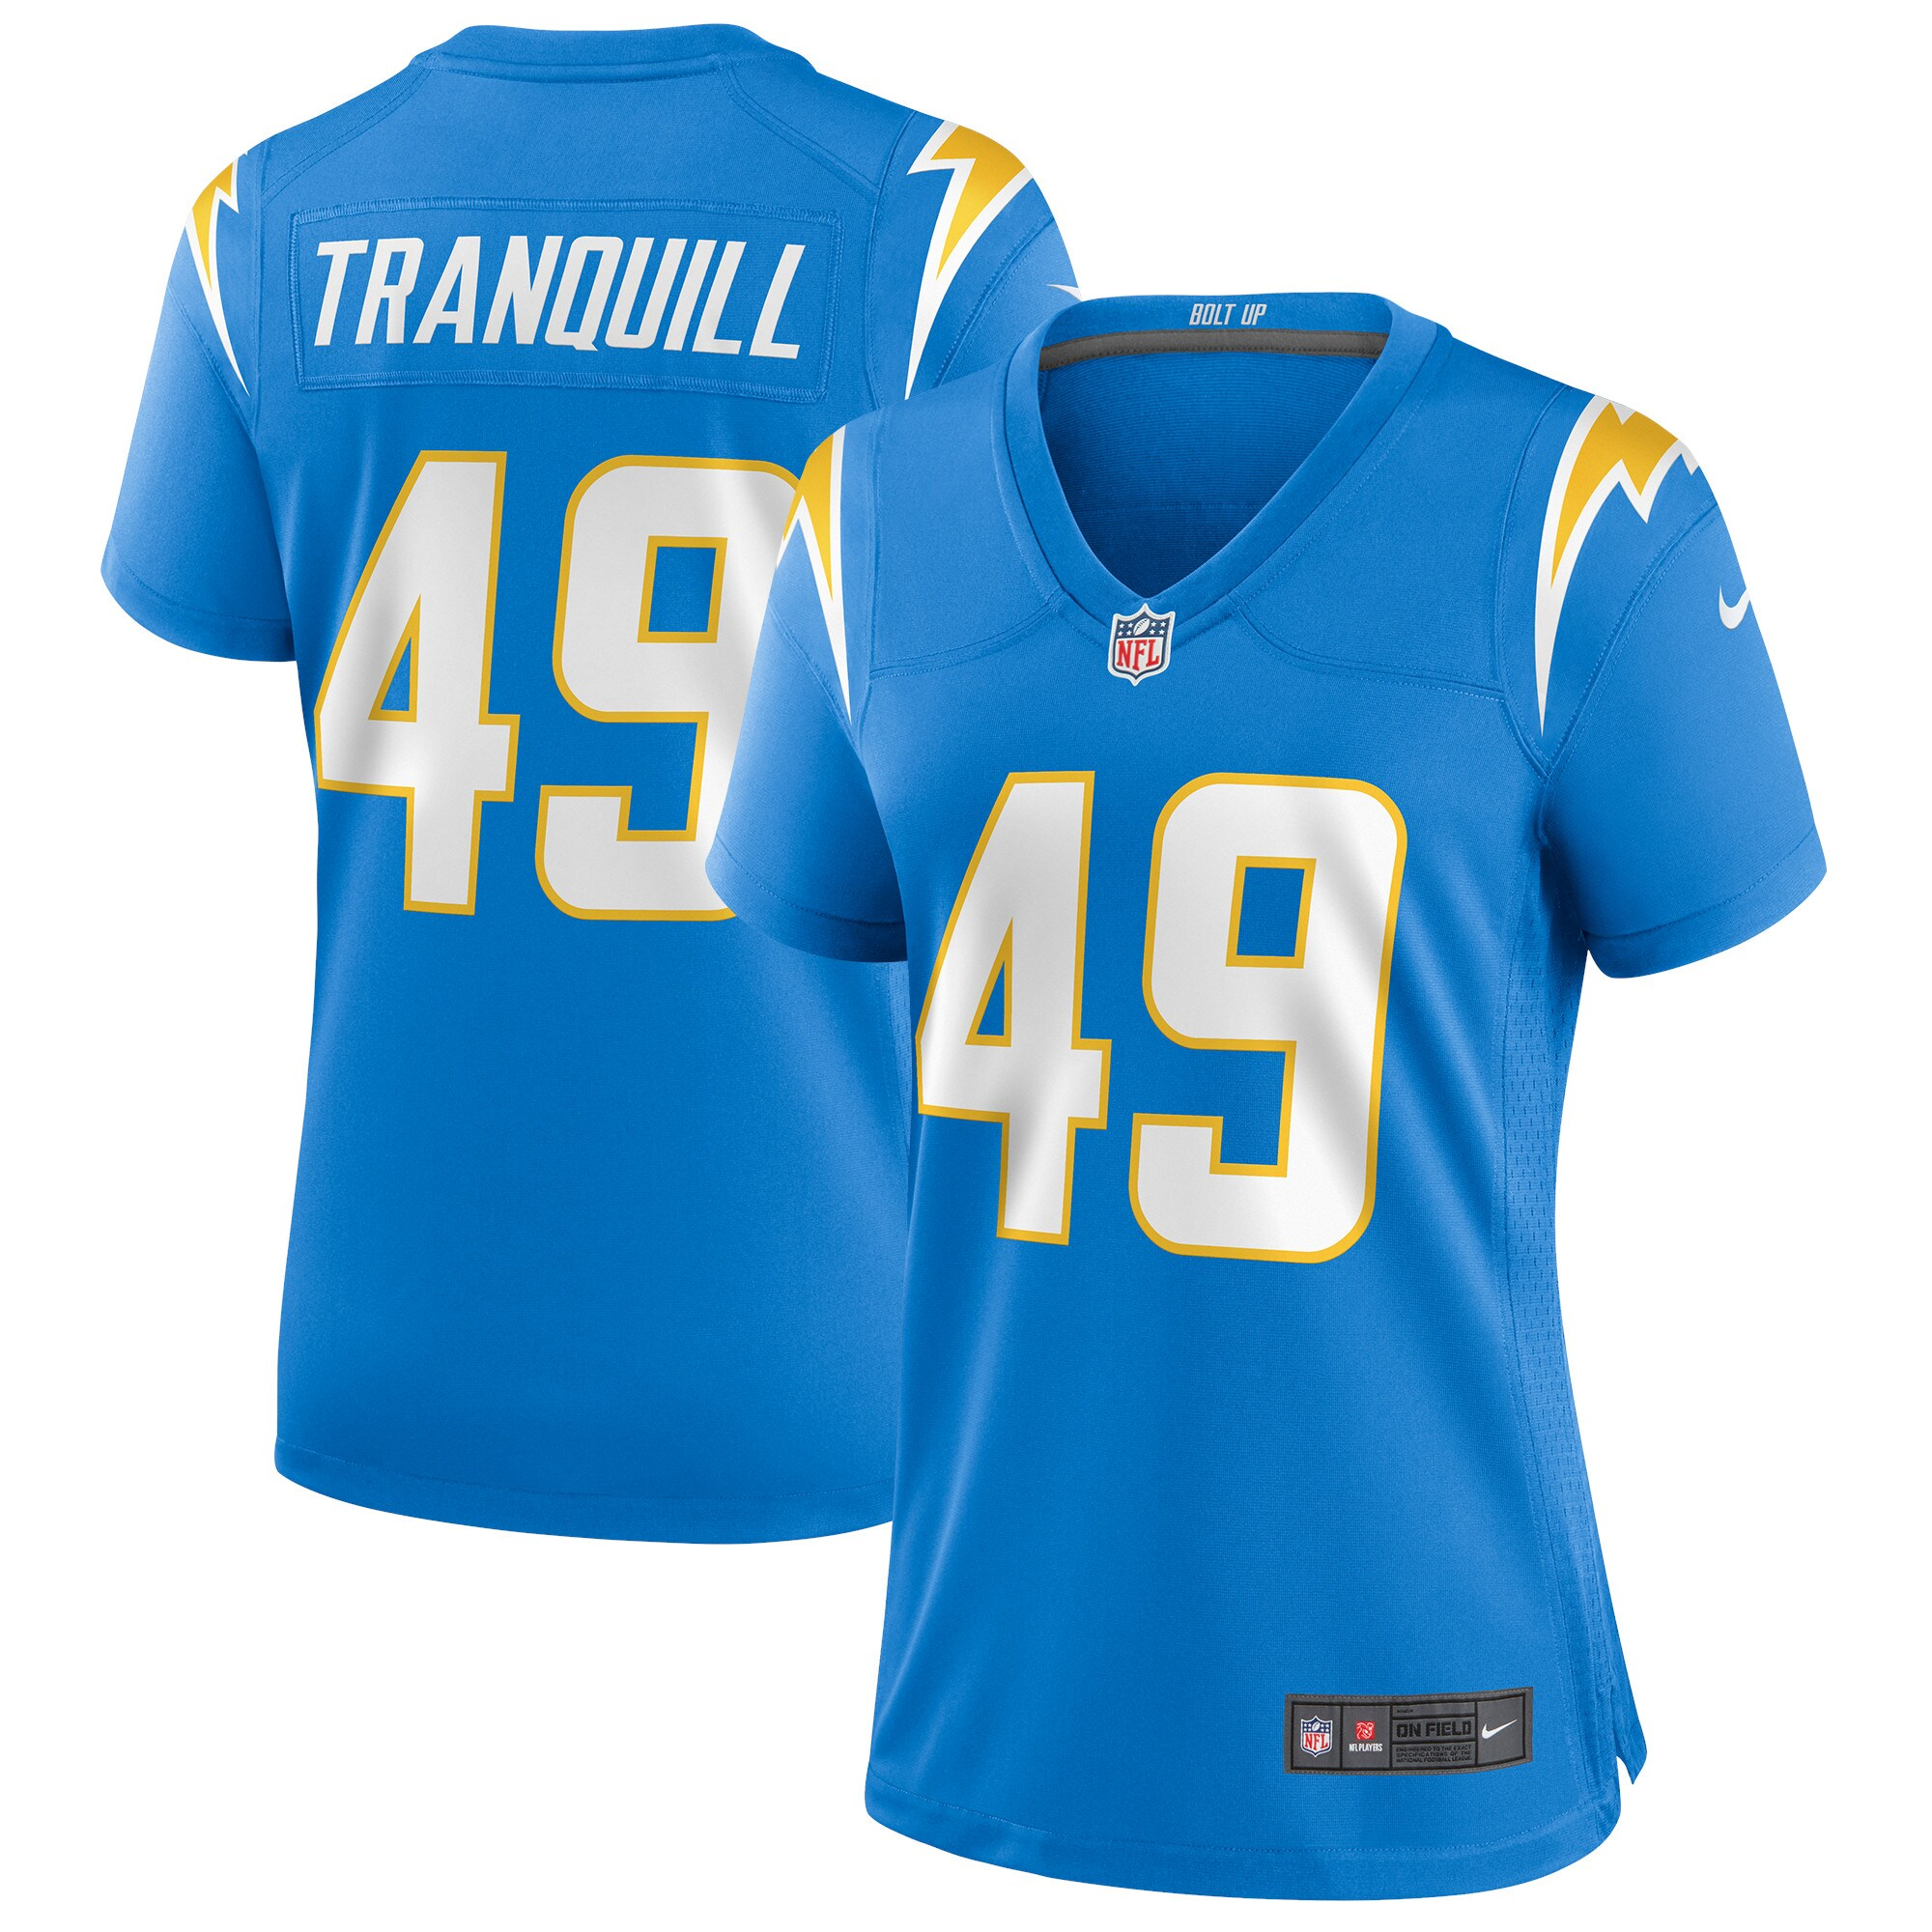 Drue Tranquill Los Angeles Chargers Nike Women's Game Jersey - Powder Blue